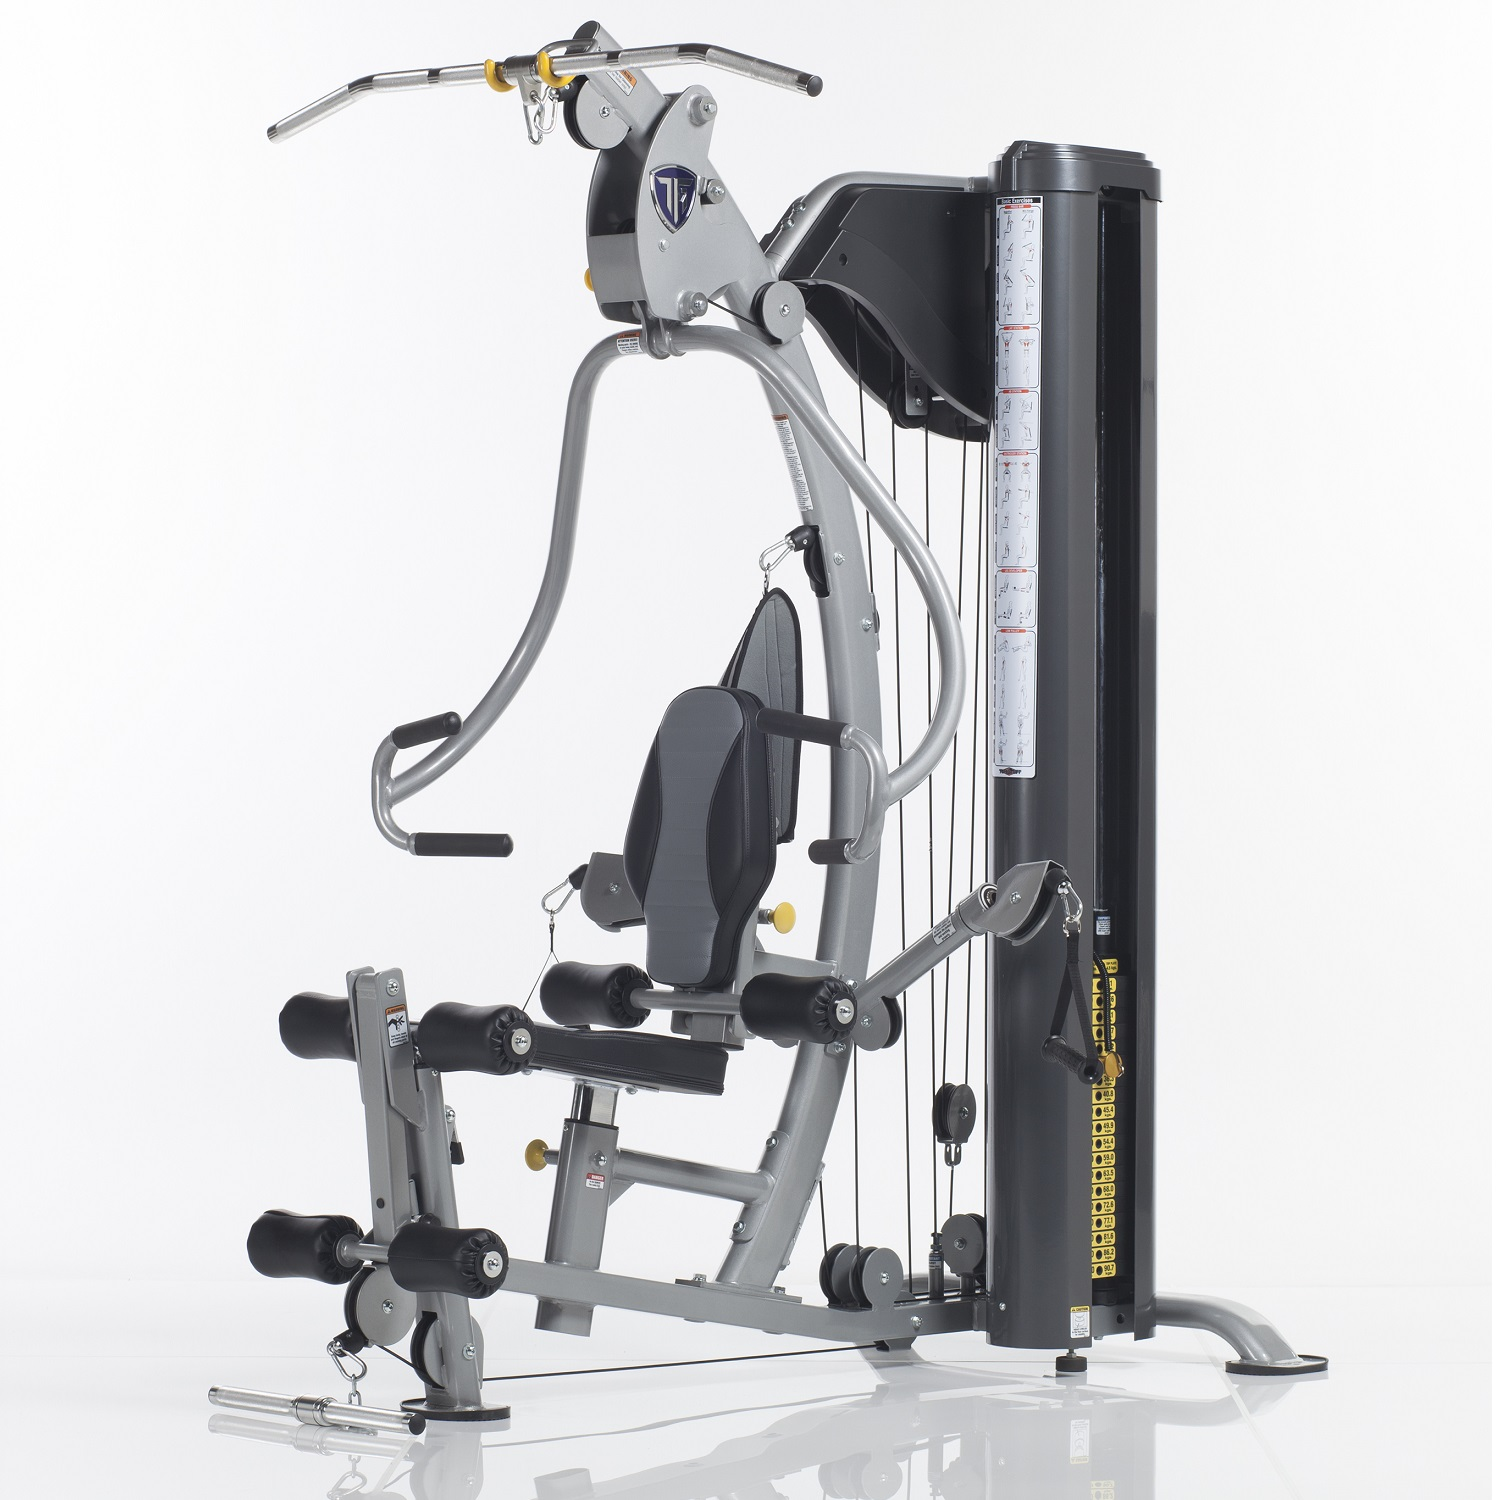 AXT-225R Basic Home Gym System